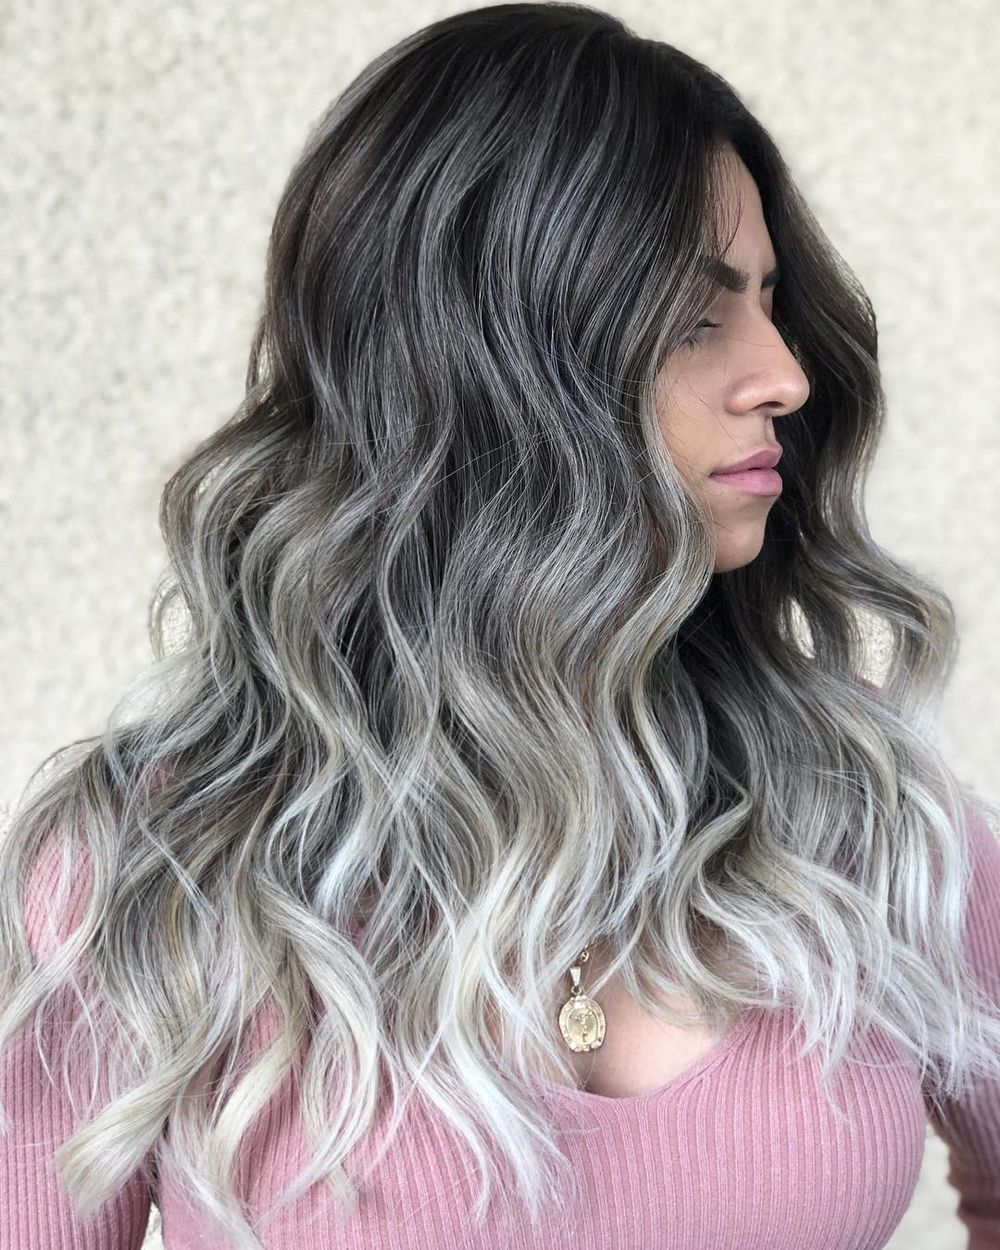 60 Shades Of Grey Silver And White Highlights For Eternal Youth Silver Hair Silver Hair Color Silver Highlights